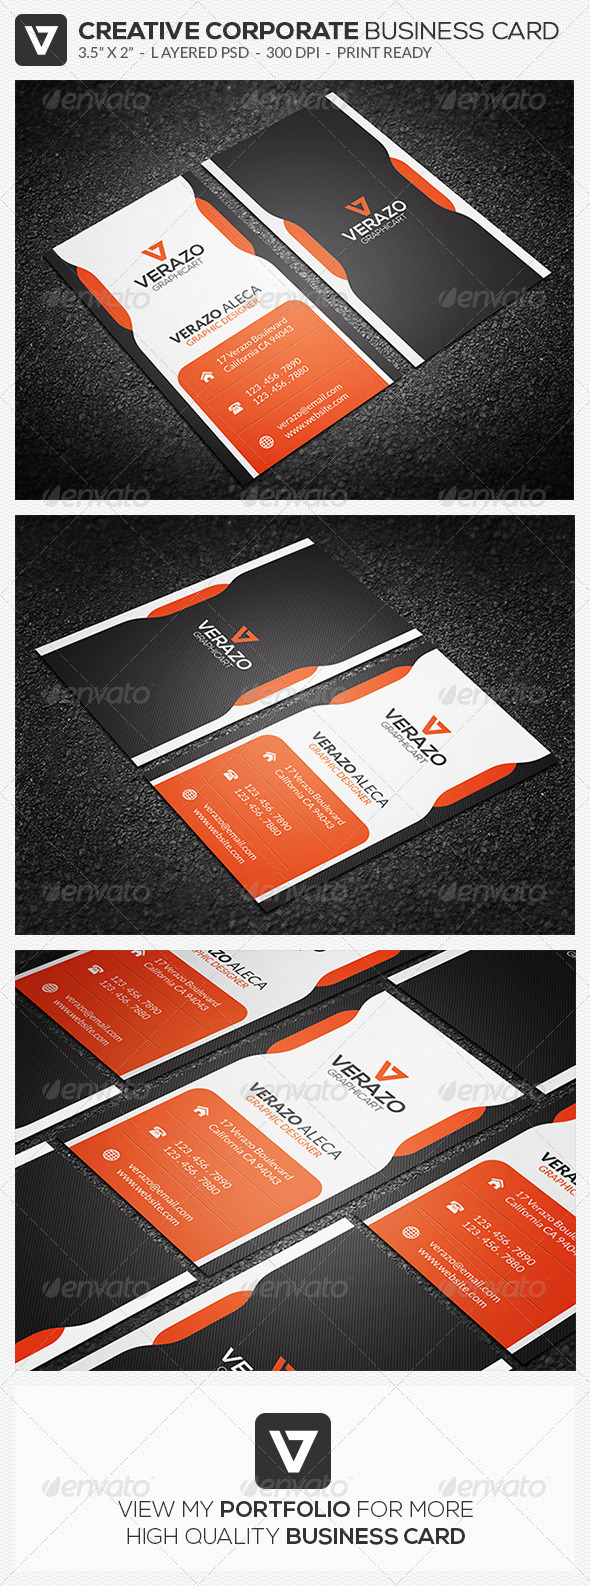 GraphicRiver Creative Corporate Business Card 50 8340541